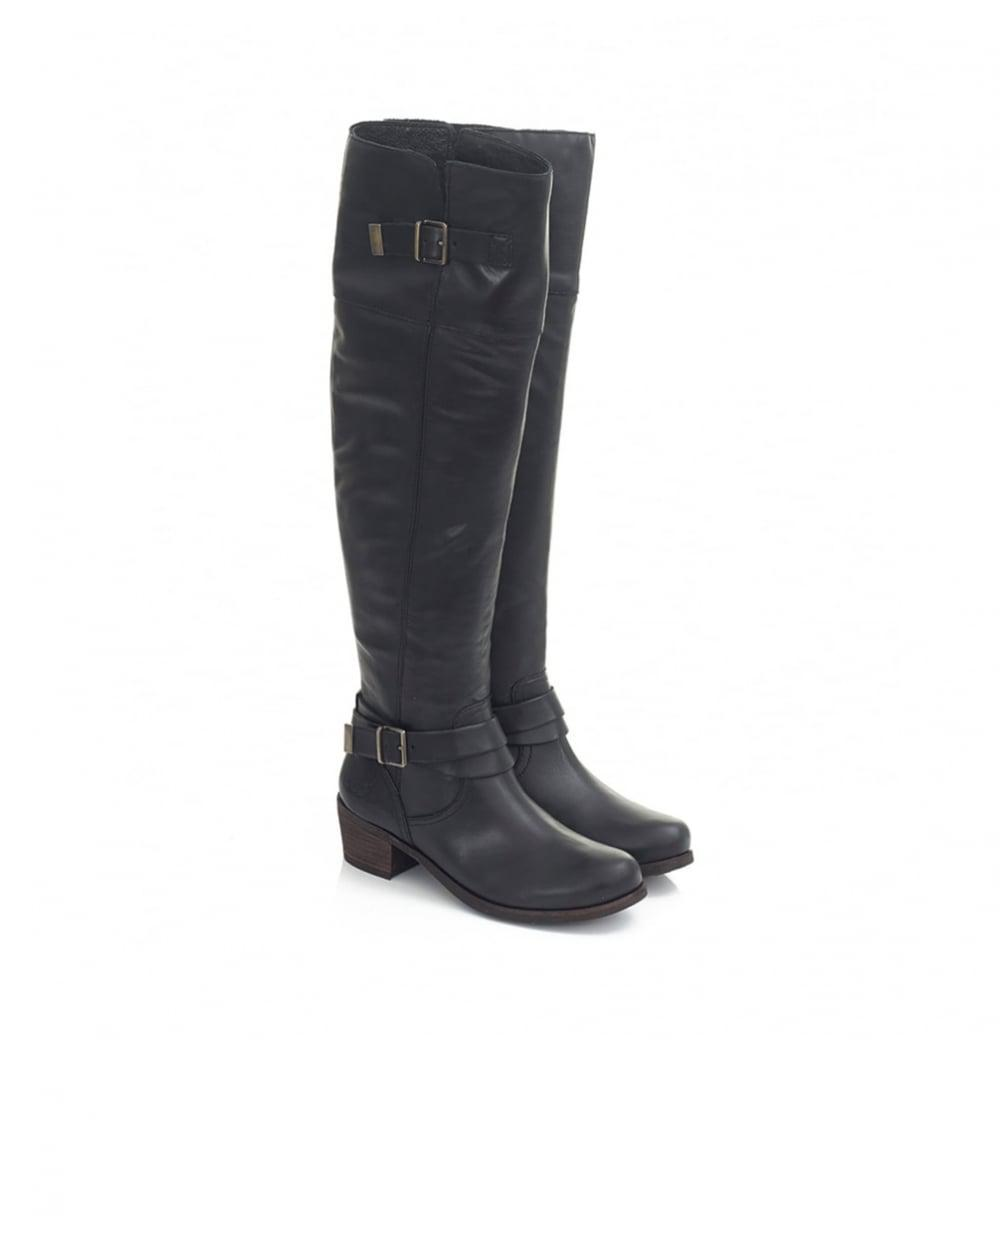 0cc37fd07e7 Ugg Black Bess Low Heel Leather Over Knee Boots